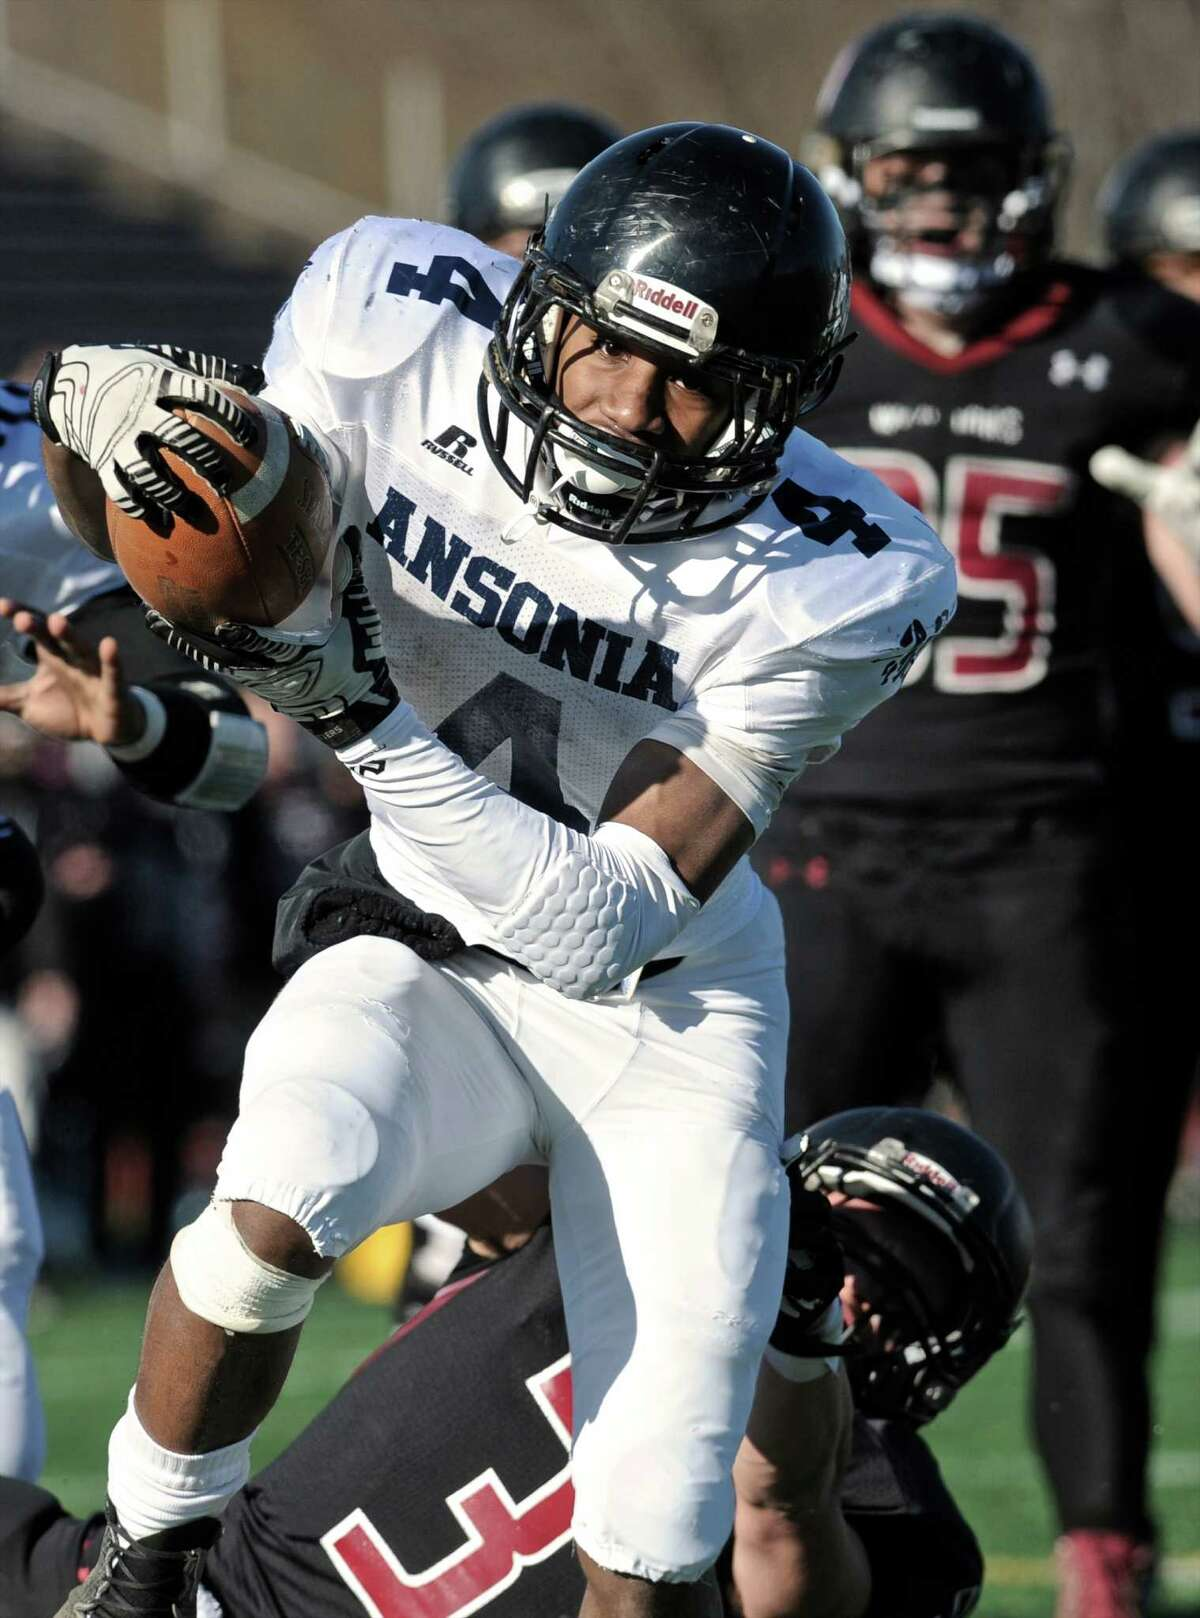 Following Arkeel Newsome's footsteps was no small task, but Bagley thrived in an expanded role as a junior. Hobbled early by an ankle injury, he still managed to run for 1,259 yards and 22 scores. The Chargers did fall a step short of a four-peat, losing 21-20 to Valley Regional/Old Lyme in the Class S-Large final. Coach's take: